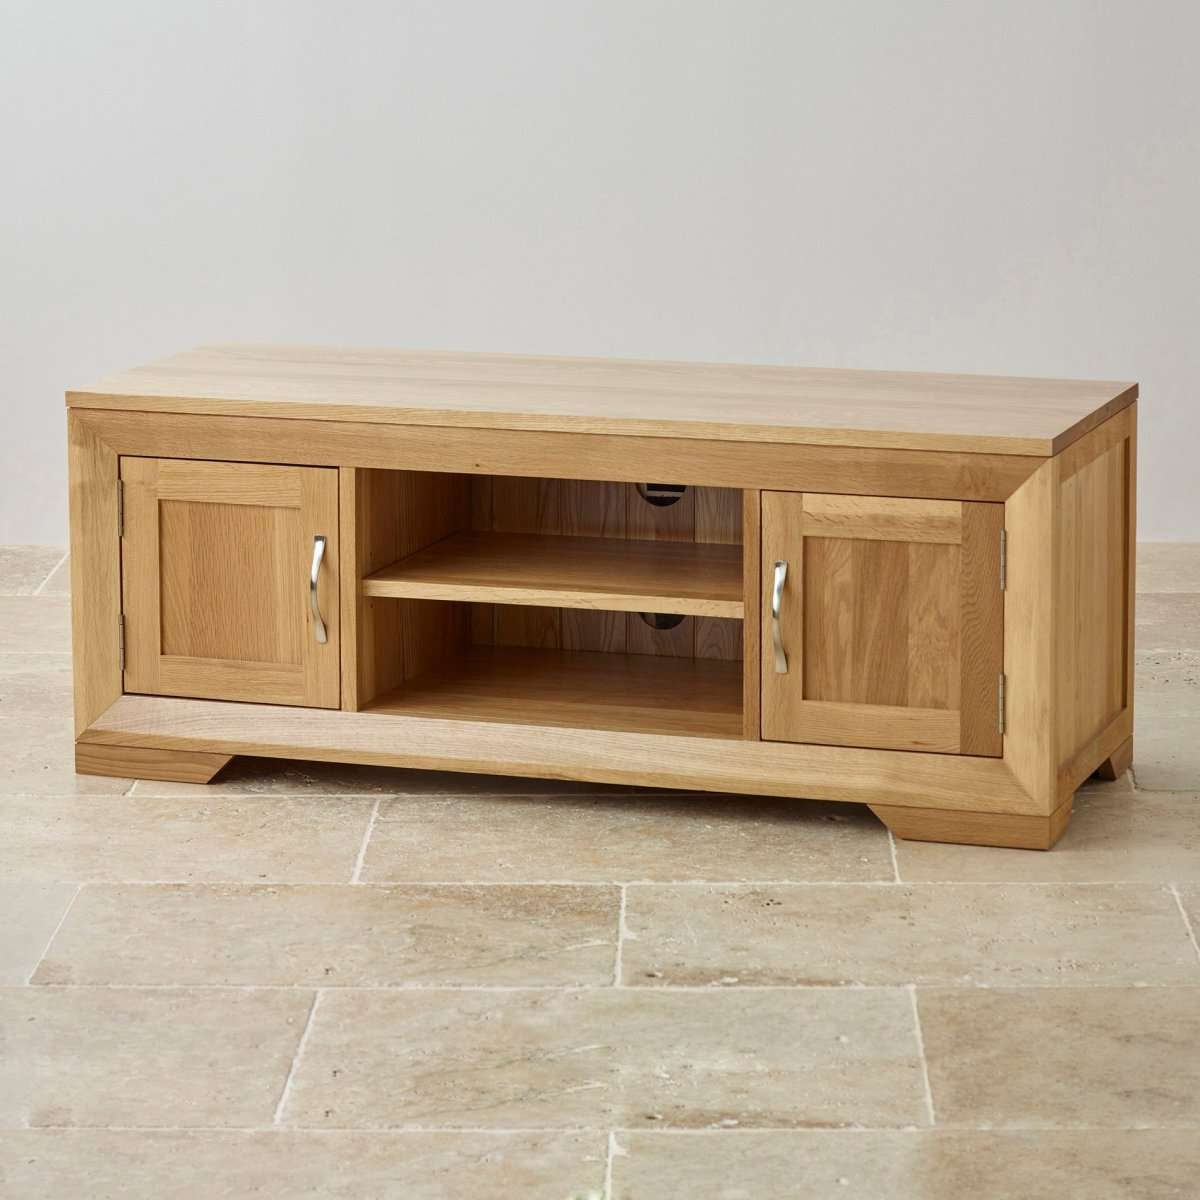 Solid Oak Tv Stands : Innovative Designs Oak Tv Console – Marku Throughout Cheap Oak Tv Stands (View 8 of 15)